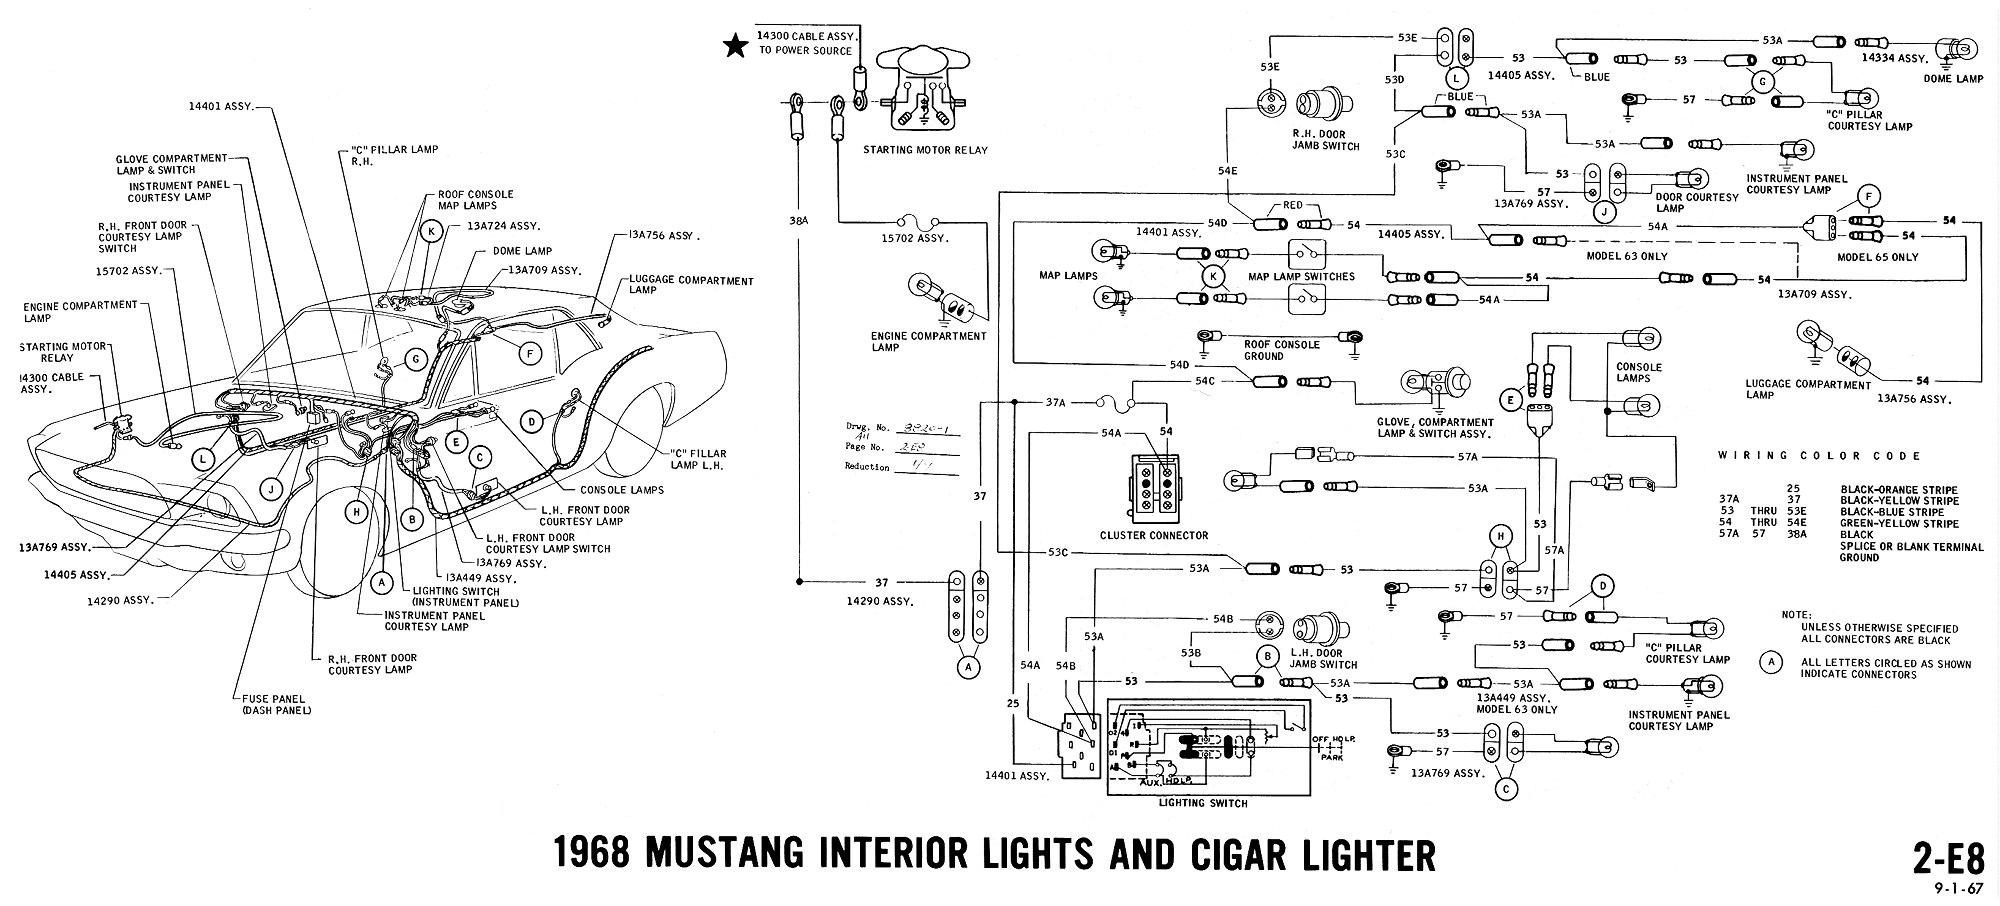 Winch Solenoid Wiring Diagram as well New Holland L555 additionally 1957 Chevy Truck Ignition Switch Wiring Diagram also Wiring Diagram For 1998 Chevy Silverado furthermore Can Anyone Help With The Wiring For Dual Tanks. on ford truck solenoid wiring diagram